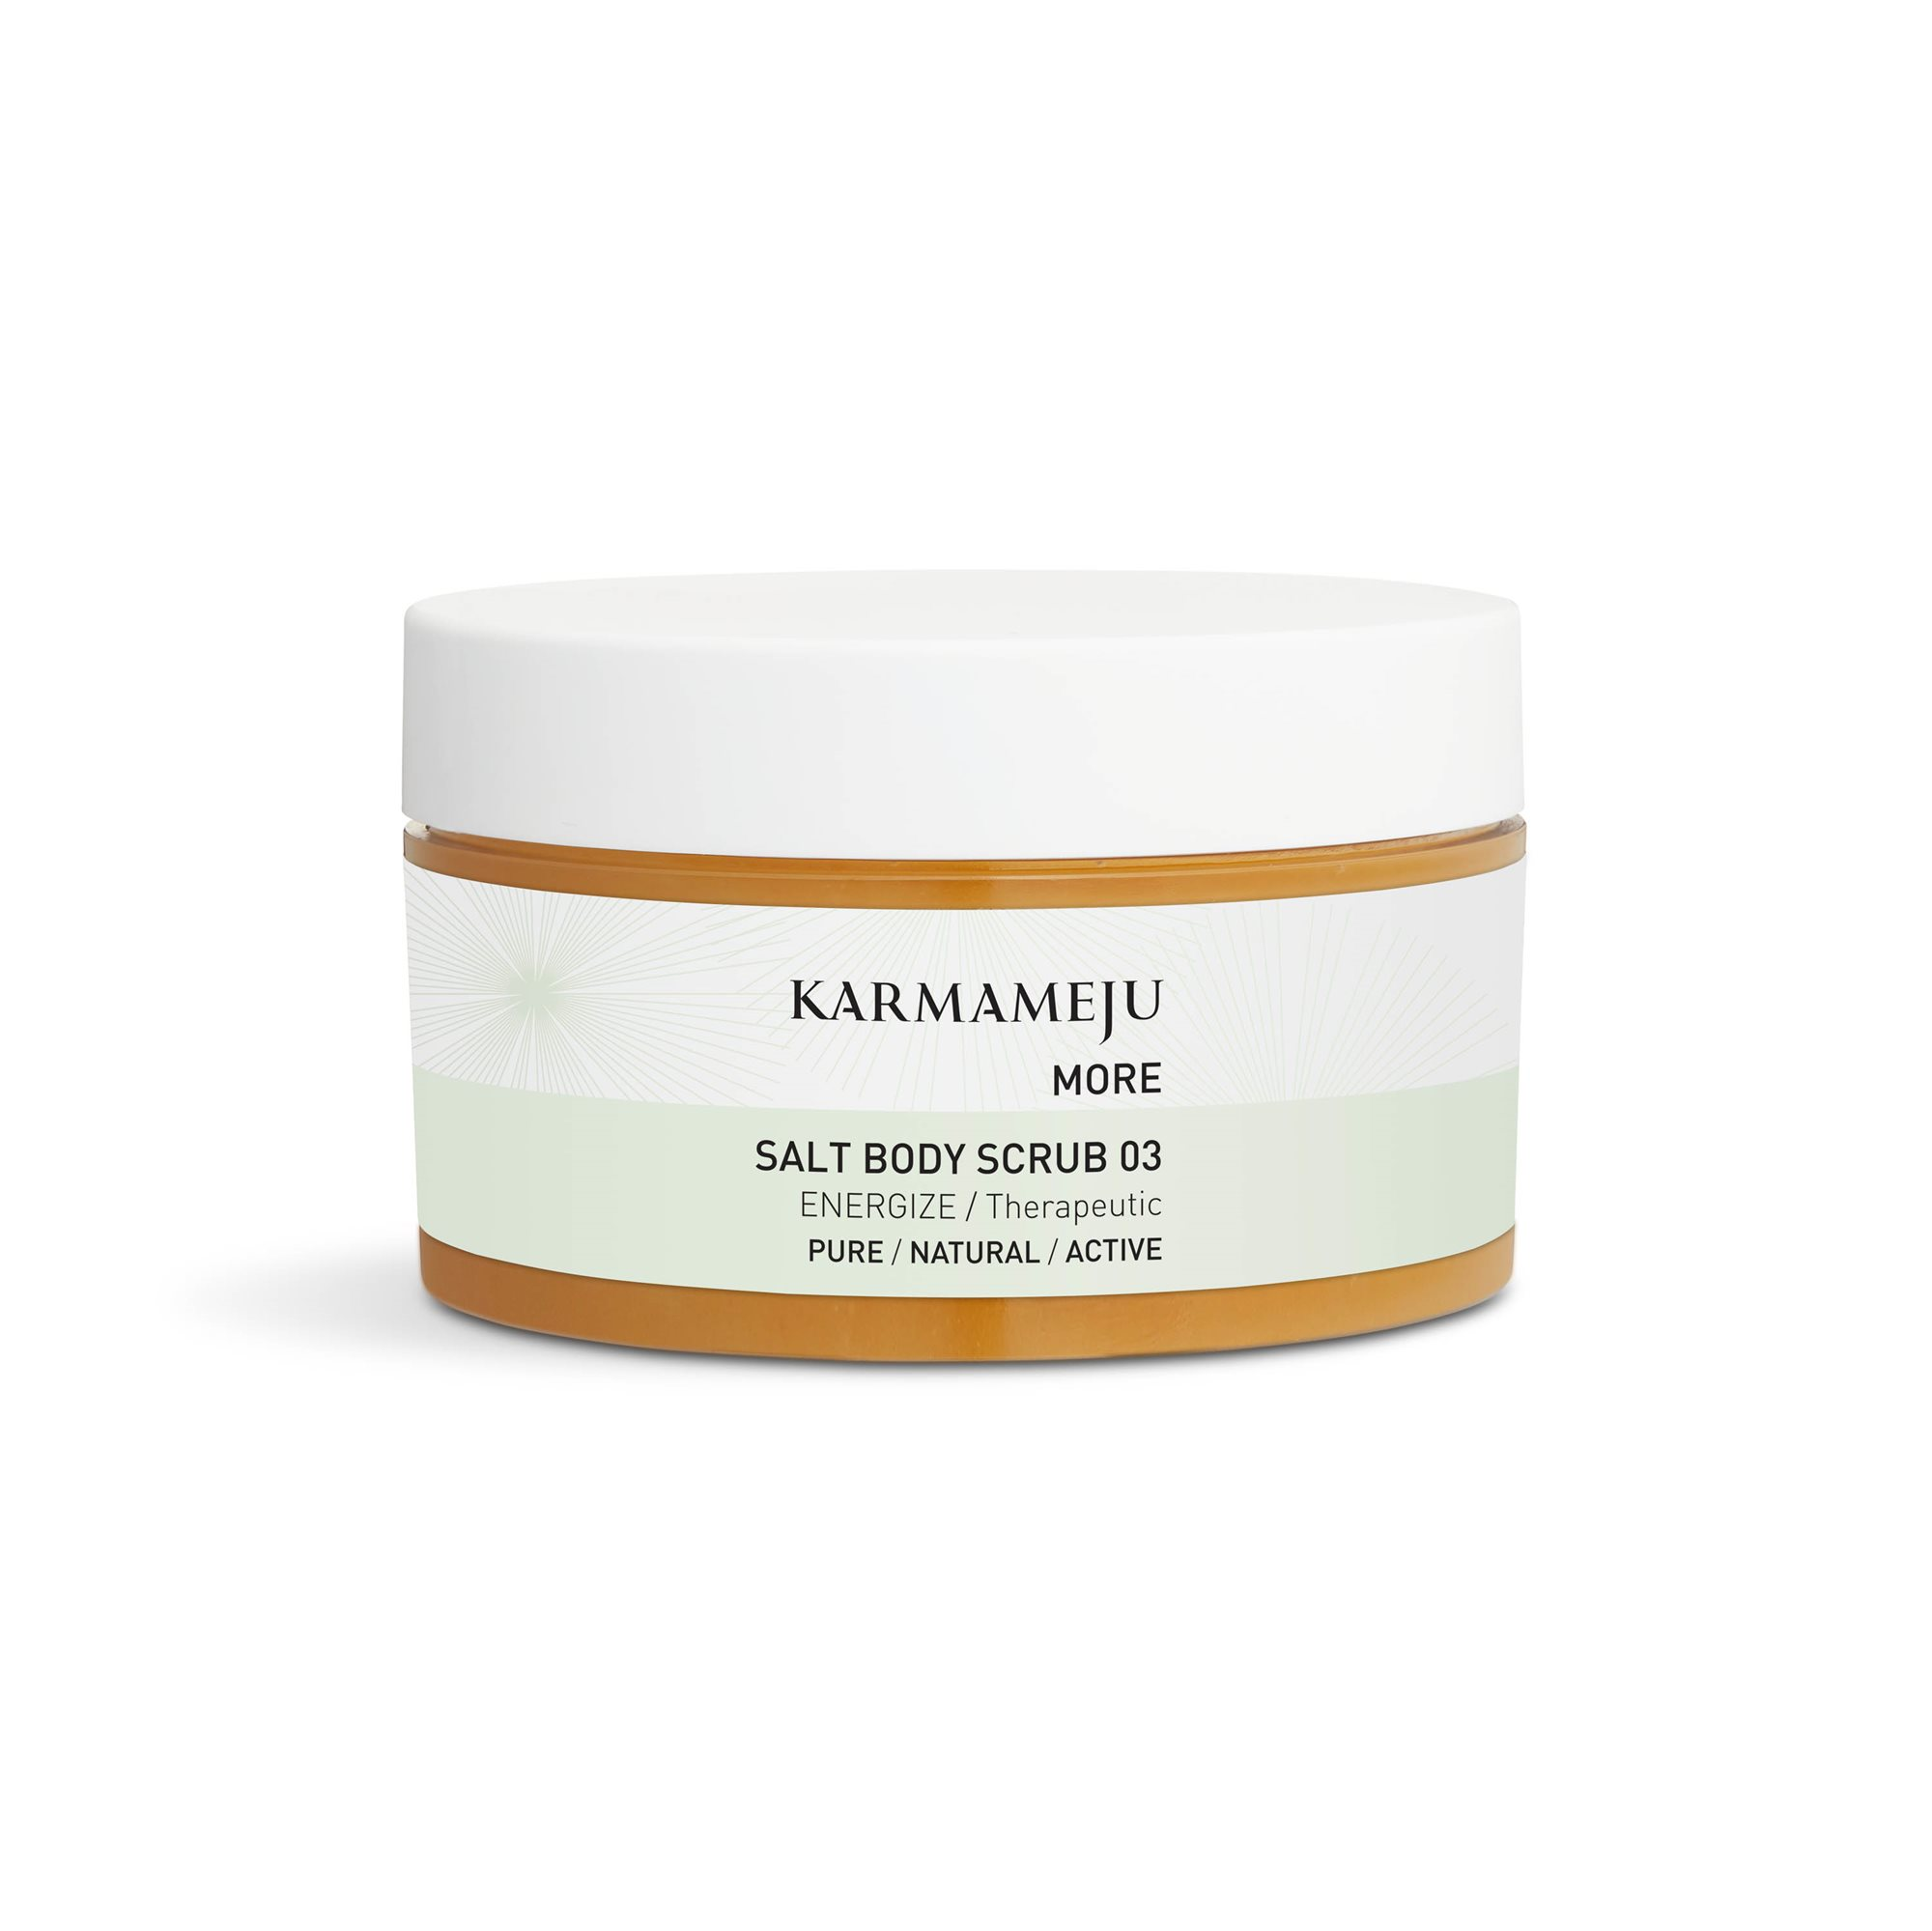 Karmameju - MORE Salt body Scrub 03